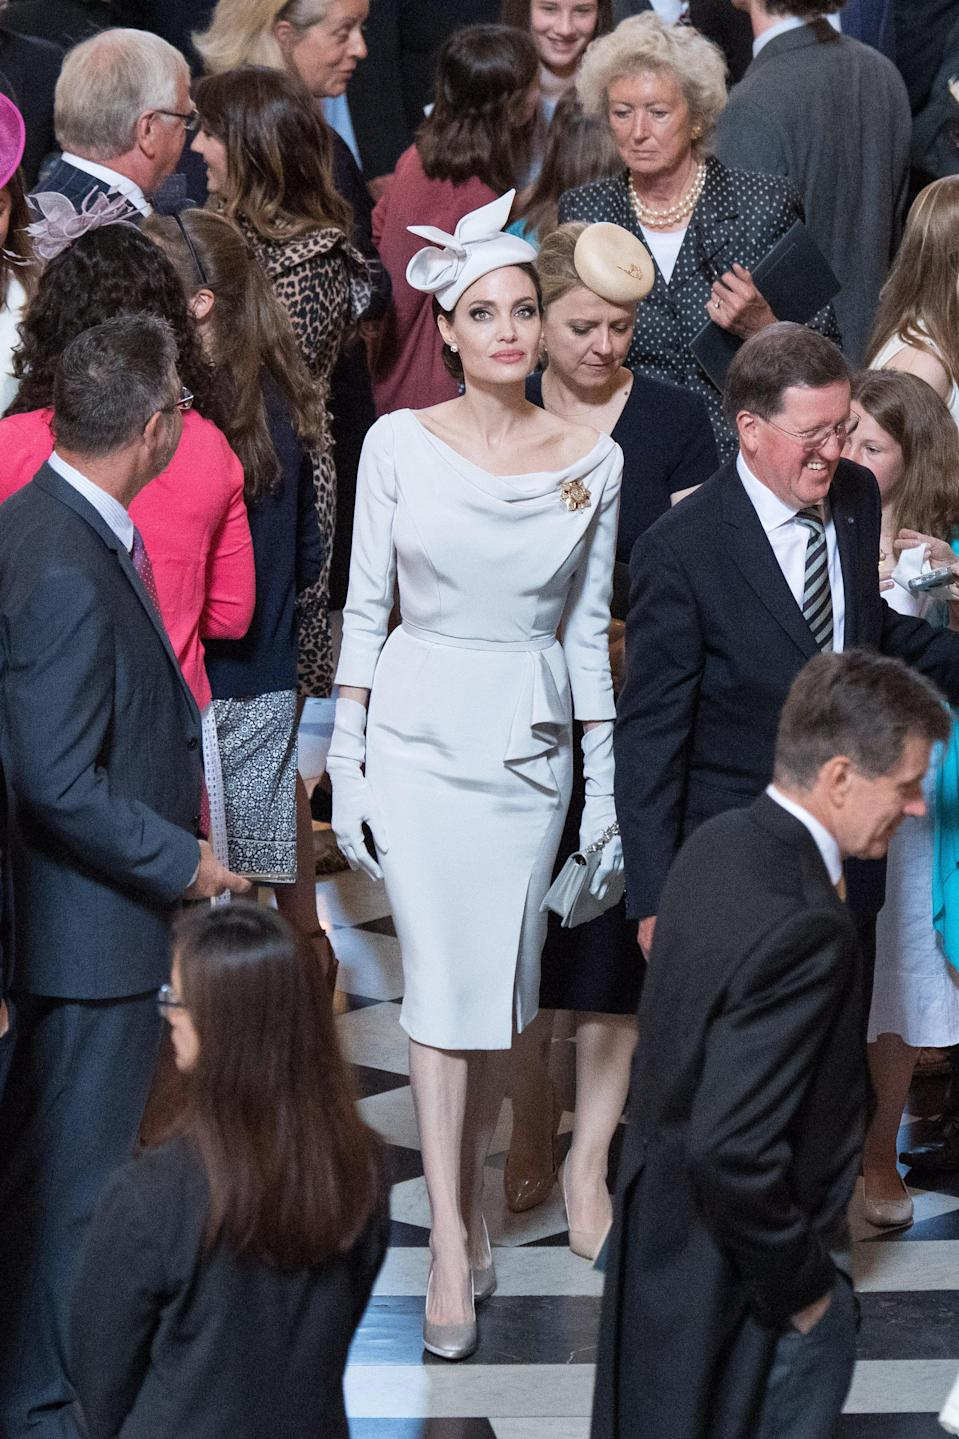 <p>On 28 June, Angelina Jolie gave Kate and Meghan a run for their money in the fashion department. The actress chose a regal Ralph and Russo dress for the 200th anniversary Order of St Michael and St George service at St Paul's Cathedral. Sadly, the Queen had to skip the event due to ill health and couldn't appreciate the outfit. <em>[Photo: Getty]</em> </p>